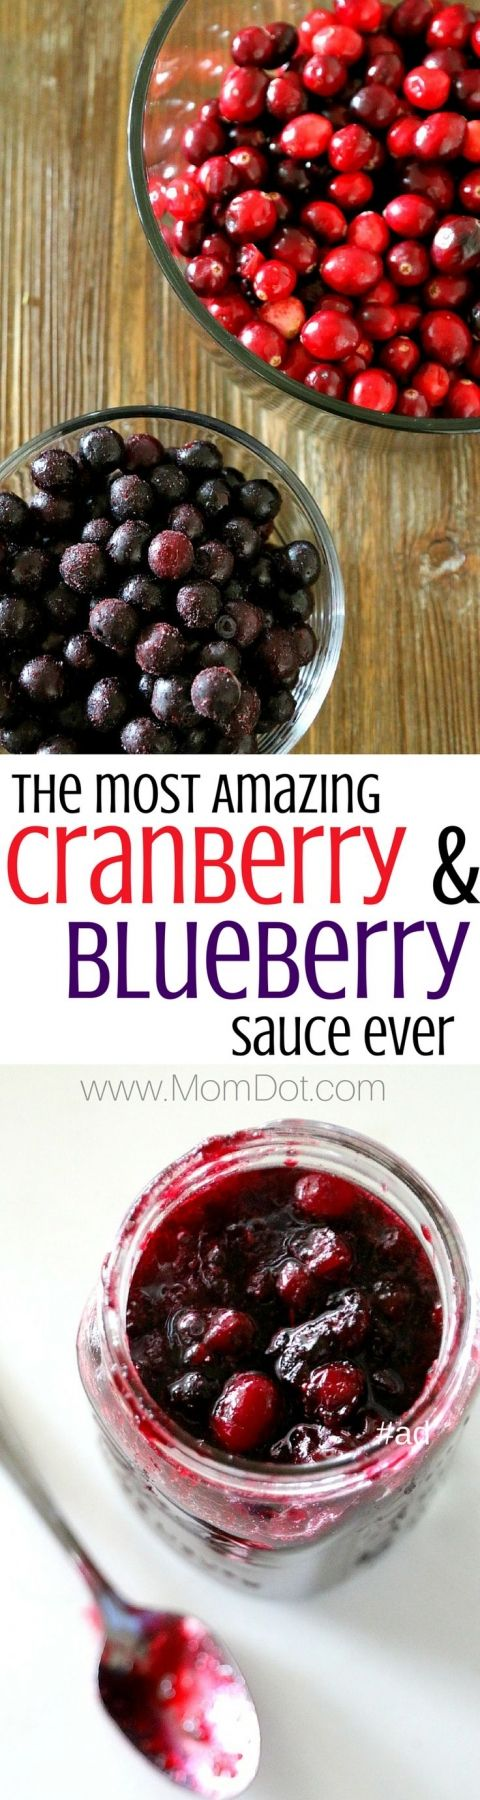 Cranberry and Blueberry Homemade Sauce Recipe (no alcohol) perfect for side dish at thanksgiving and Christmas, but even better for a delicious touch to pancakes, waffles and pies!